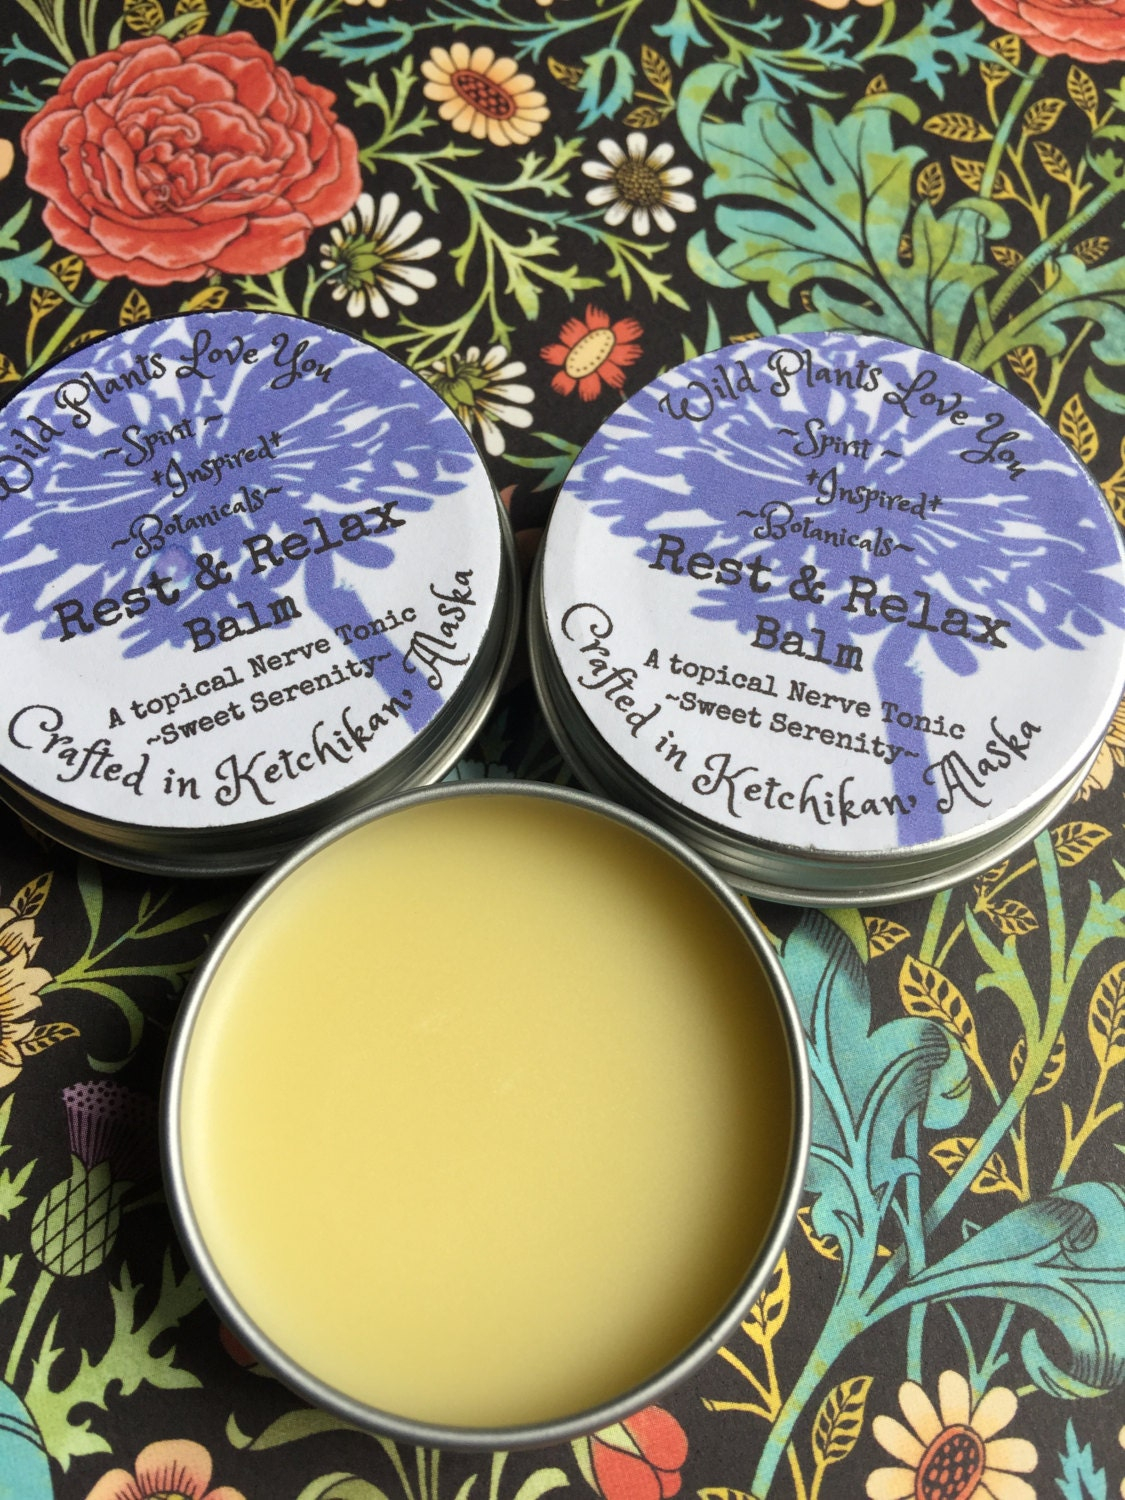 Rest & Relax Balm a topical nerve tonic